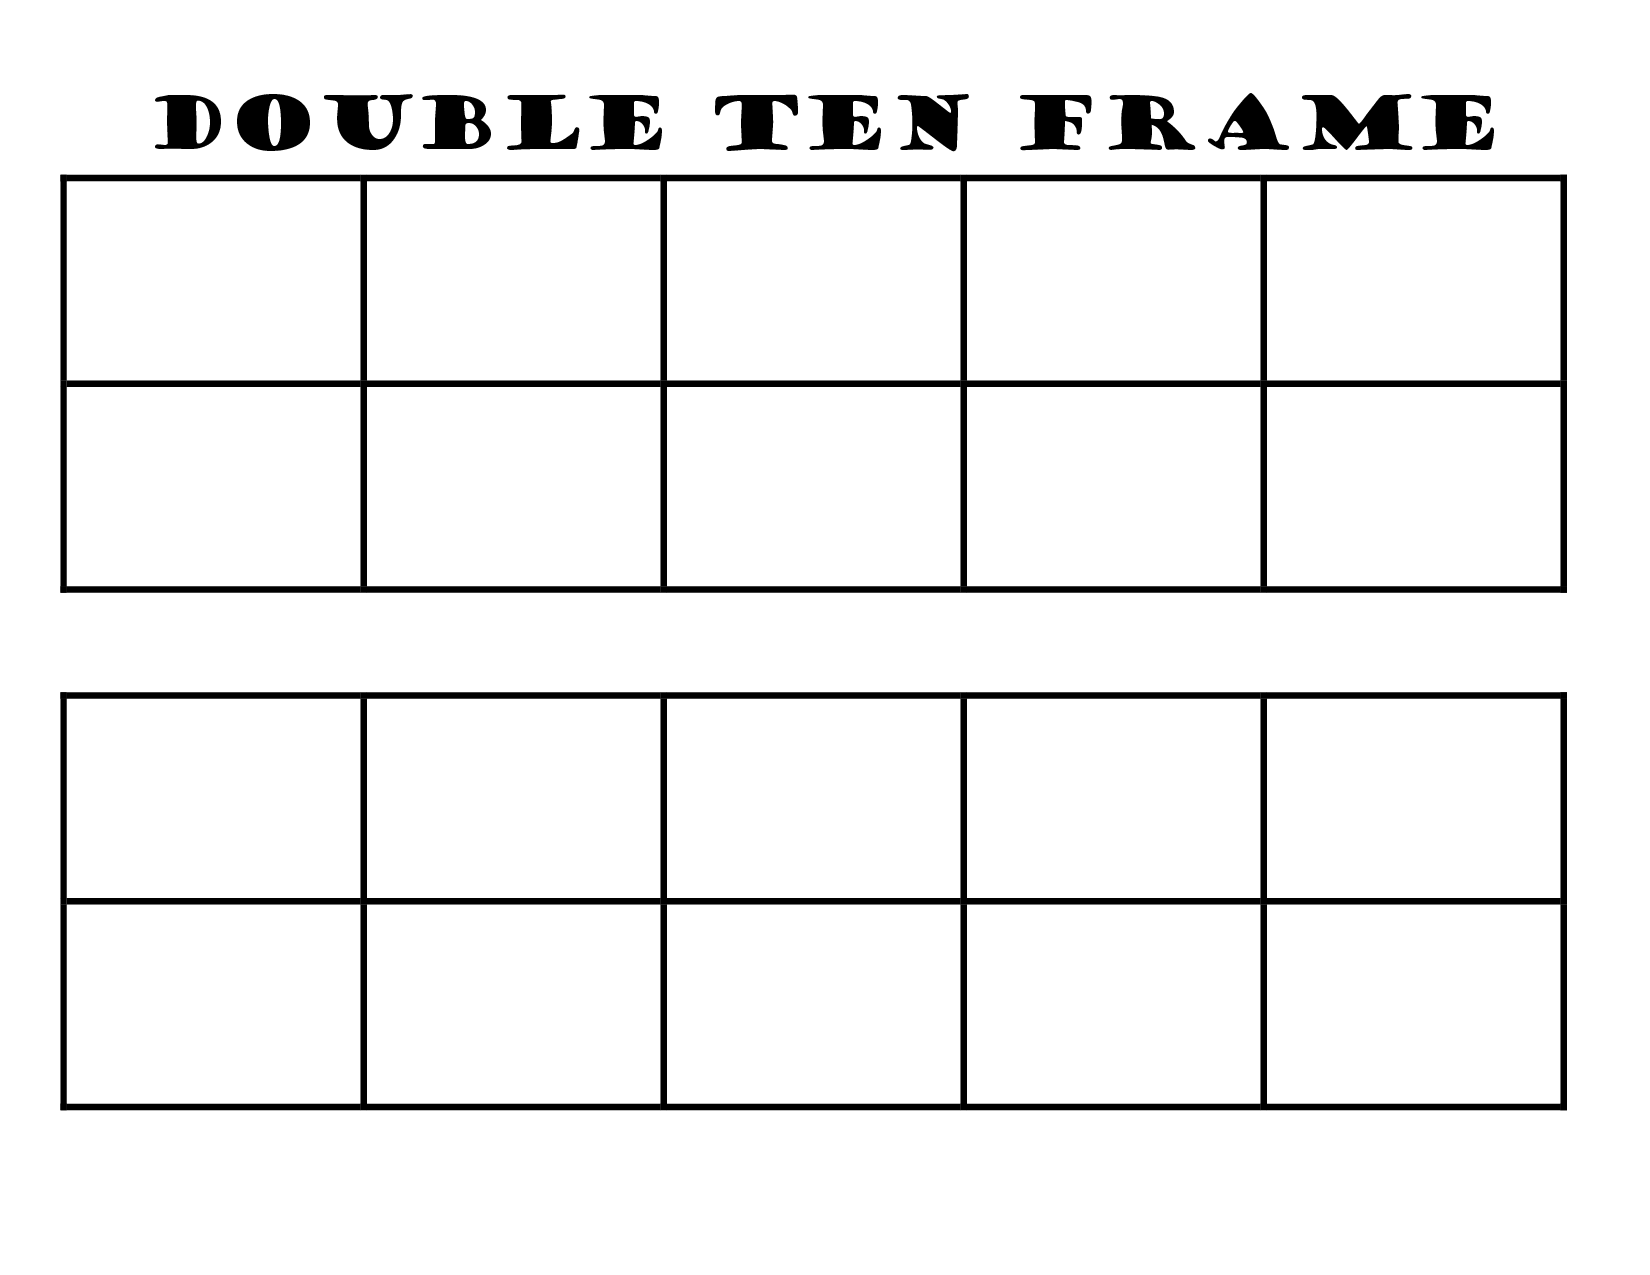 Blank Double Ten Frame Printable